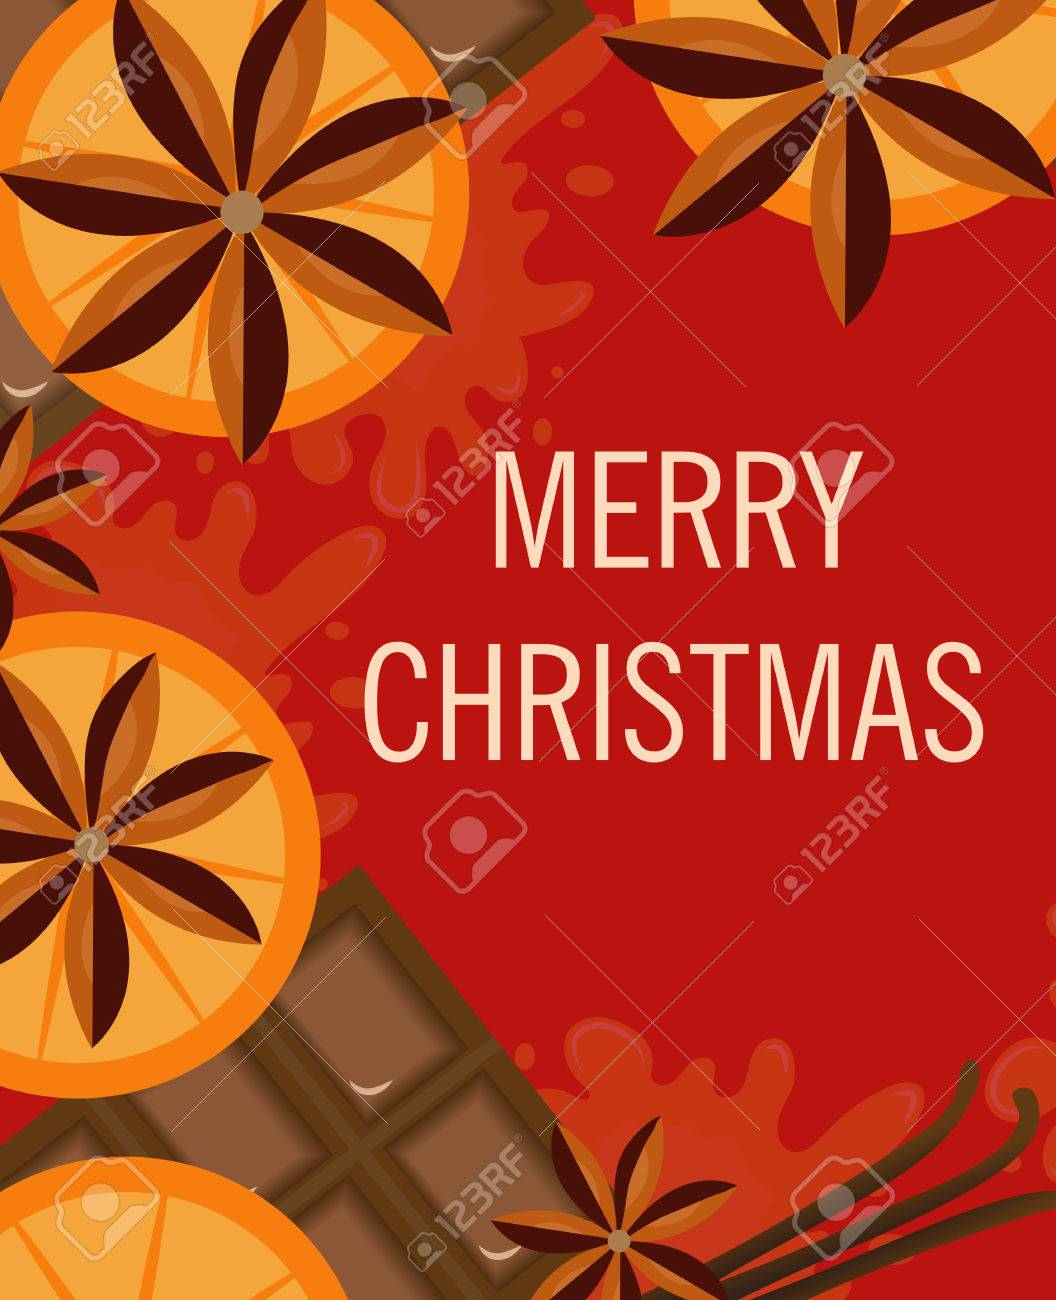 Christmas background with orange and spices christmas greeting christmas background with orange and spices christmas greeting card template for the poster m4hsunfo Choice Image